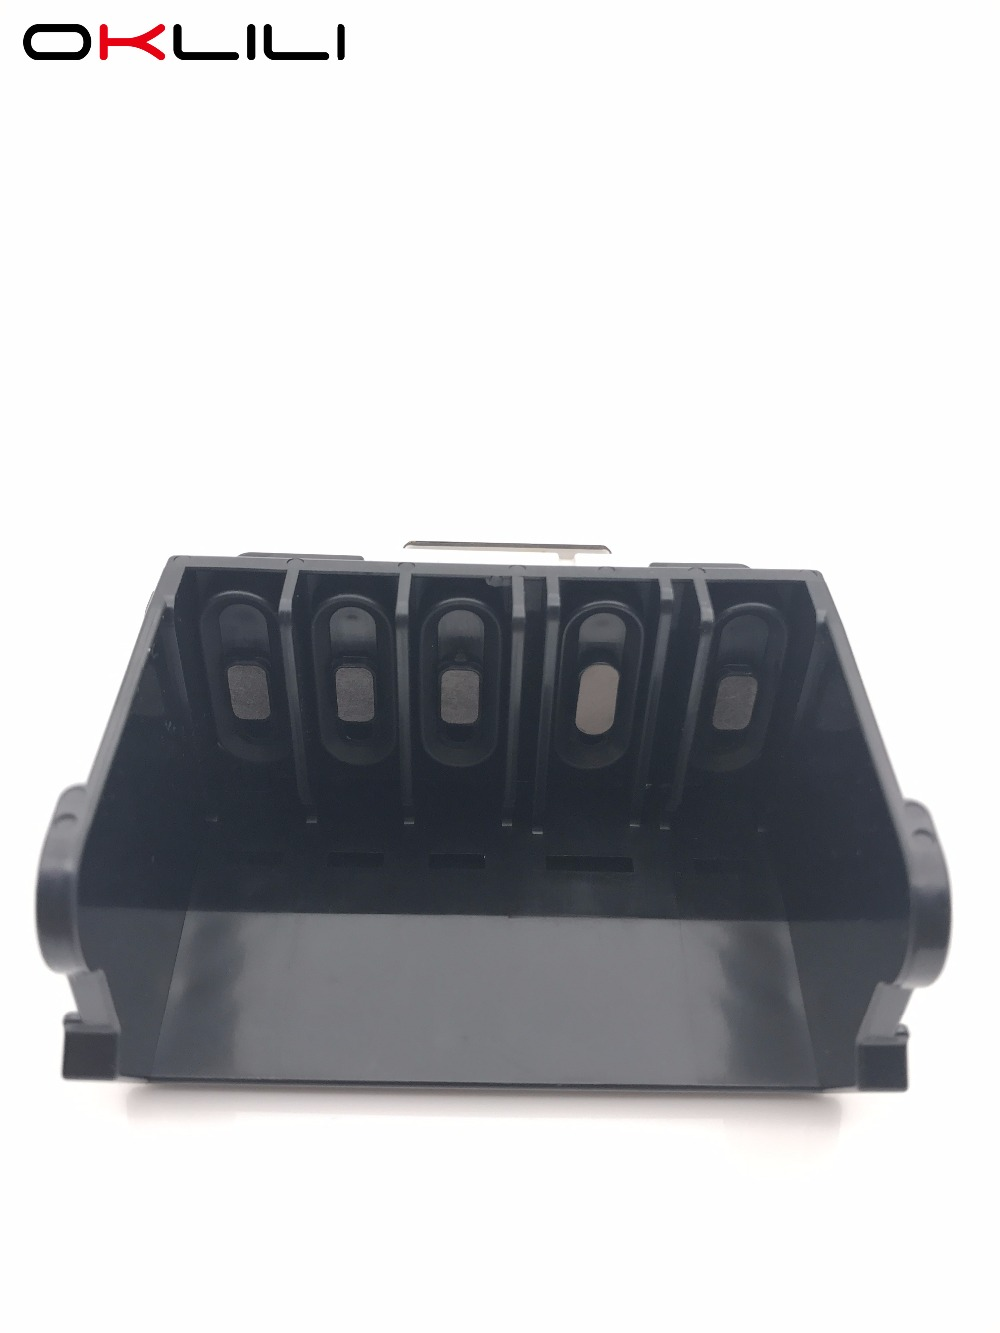 OKLILI ORIGINAL QY6-0066 QY6-0066-000 Printhead Print Head Printer Head for Canon MX7600 iX7000 new original print head qy6 0061 00 printhead for canon ip4300 ip5200 ip5200r mp600 mp600r mp800 mp800r mp830 plotter